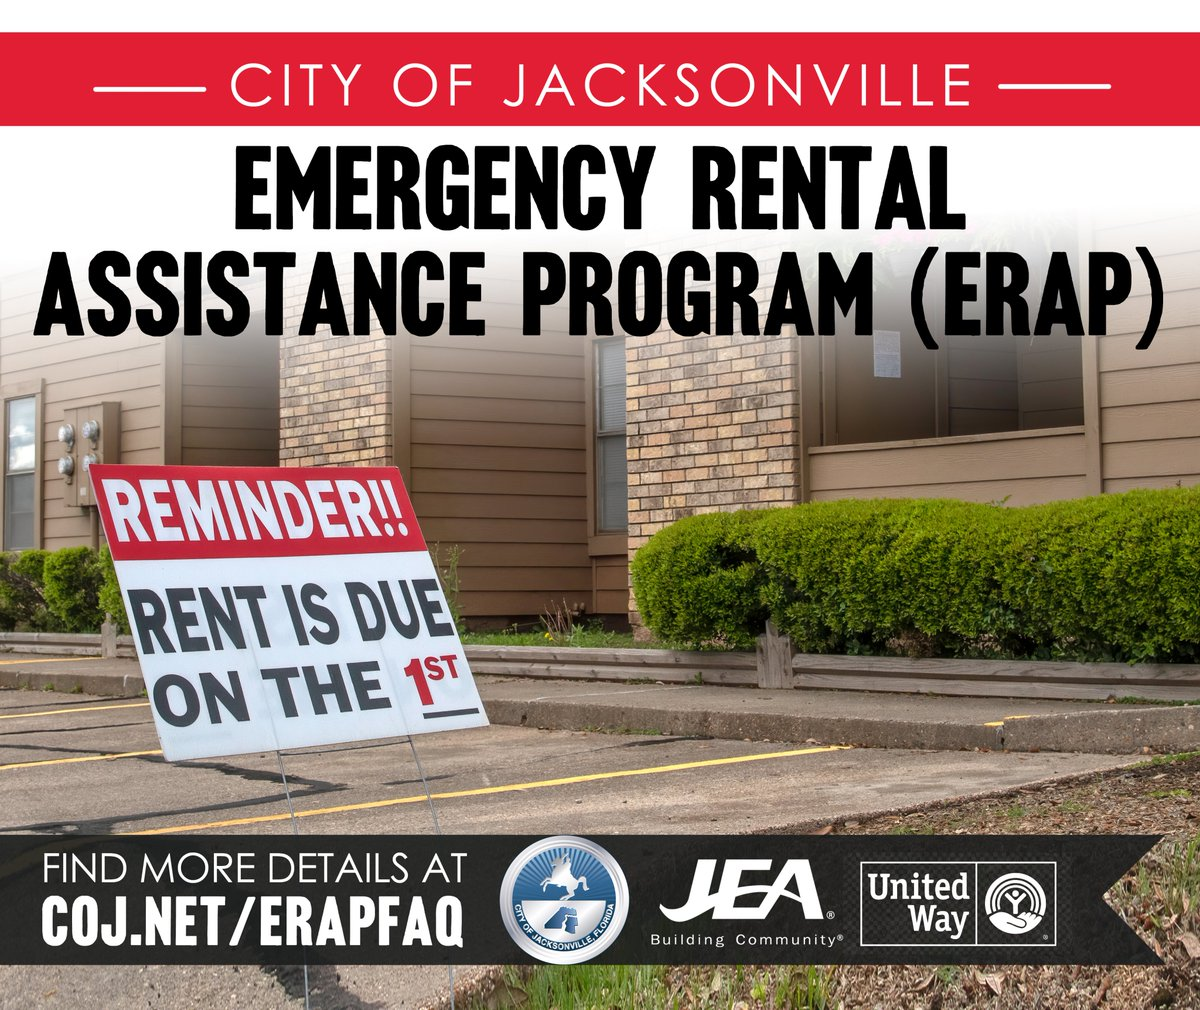 City Of Jacksonville Coj On Twitter The City Of Jacksonville S Emergency Rental Assistance Program Is Now Accepting Applications Online And In Person For Eligible Duval County Residents Apply In Person Or Online